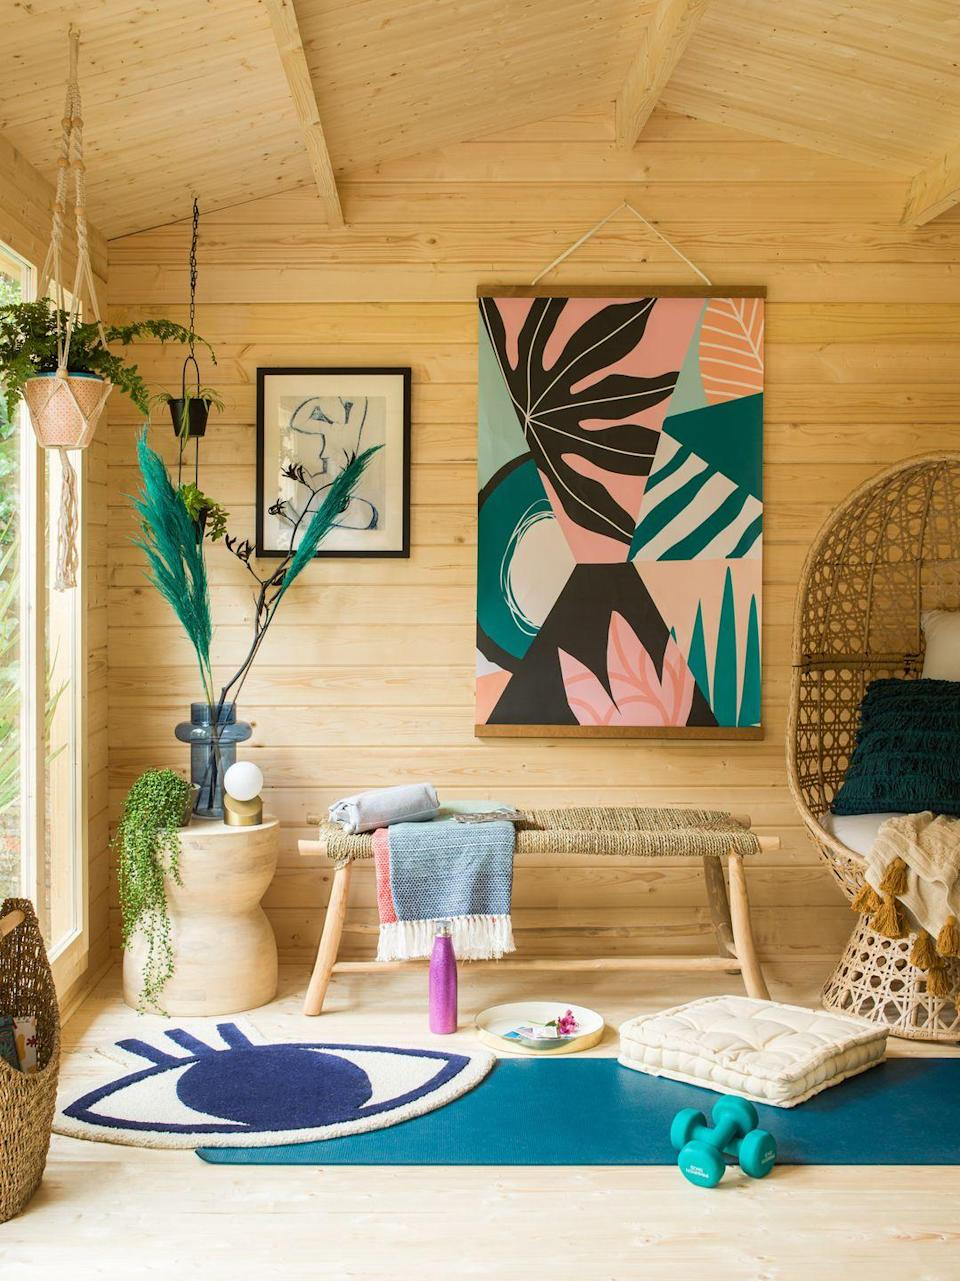 <p>Health and fitness was a key consideration for AJ when designing this space. The self-care corner is equipped with a comfy yoga mat, a couple of weights, blankets and some cushions. </p>